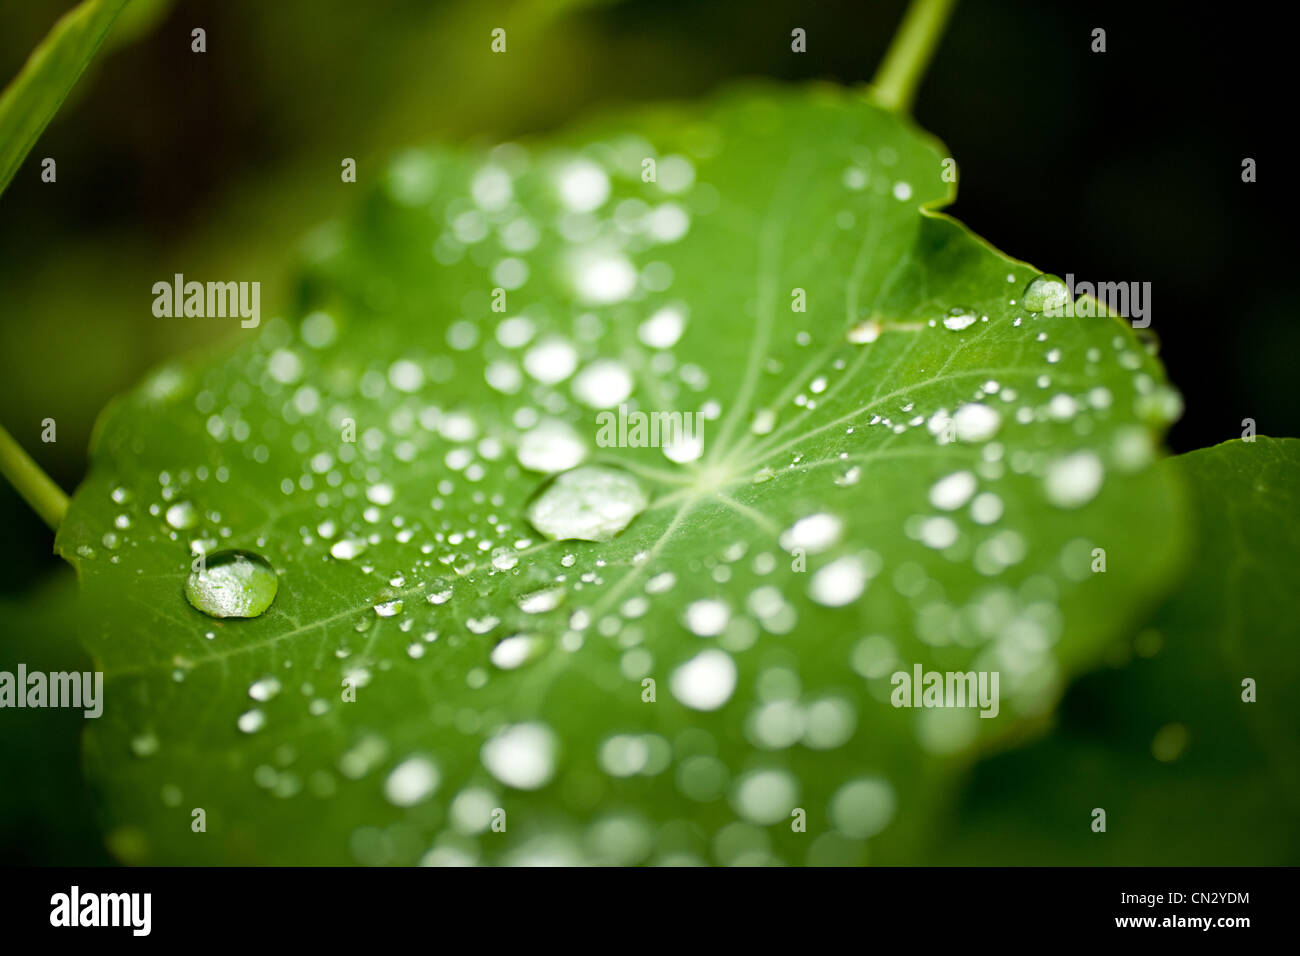 Water droplets on leaf - Stock Image